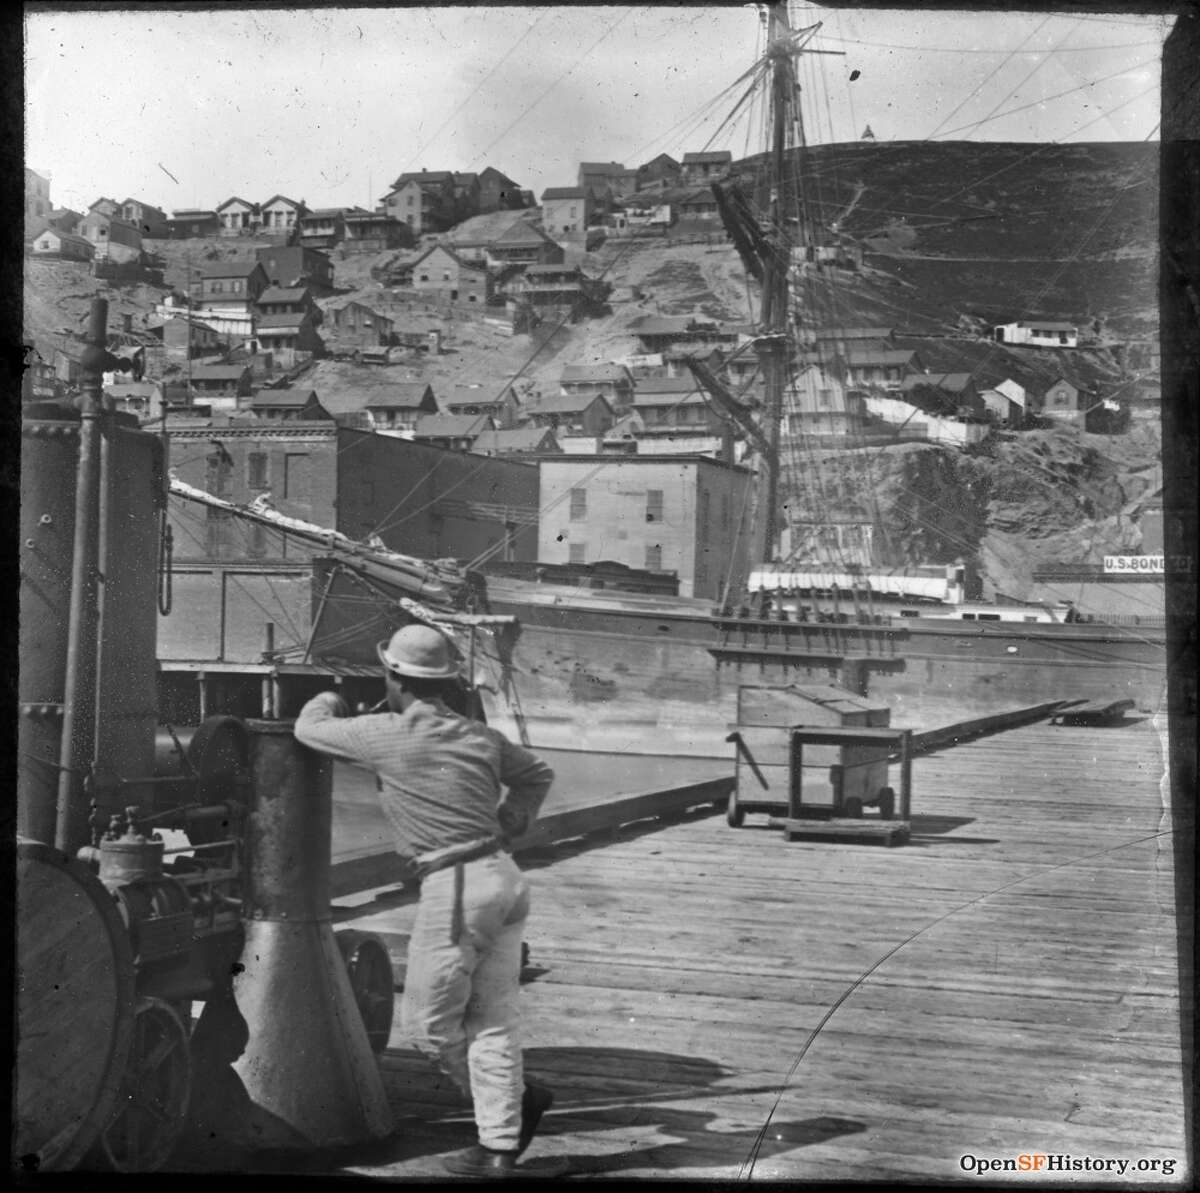 Early, undated photo of Telegraph Hill, from waterfront pier near present Embarcadero. Courtesy of OpenSFHistory.org.